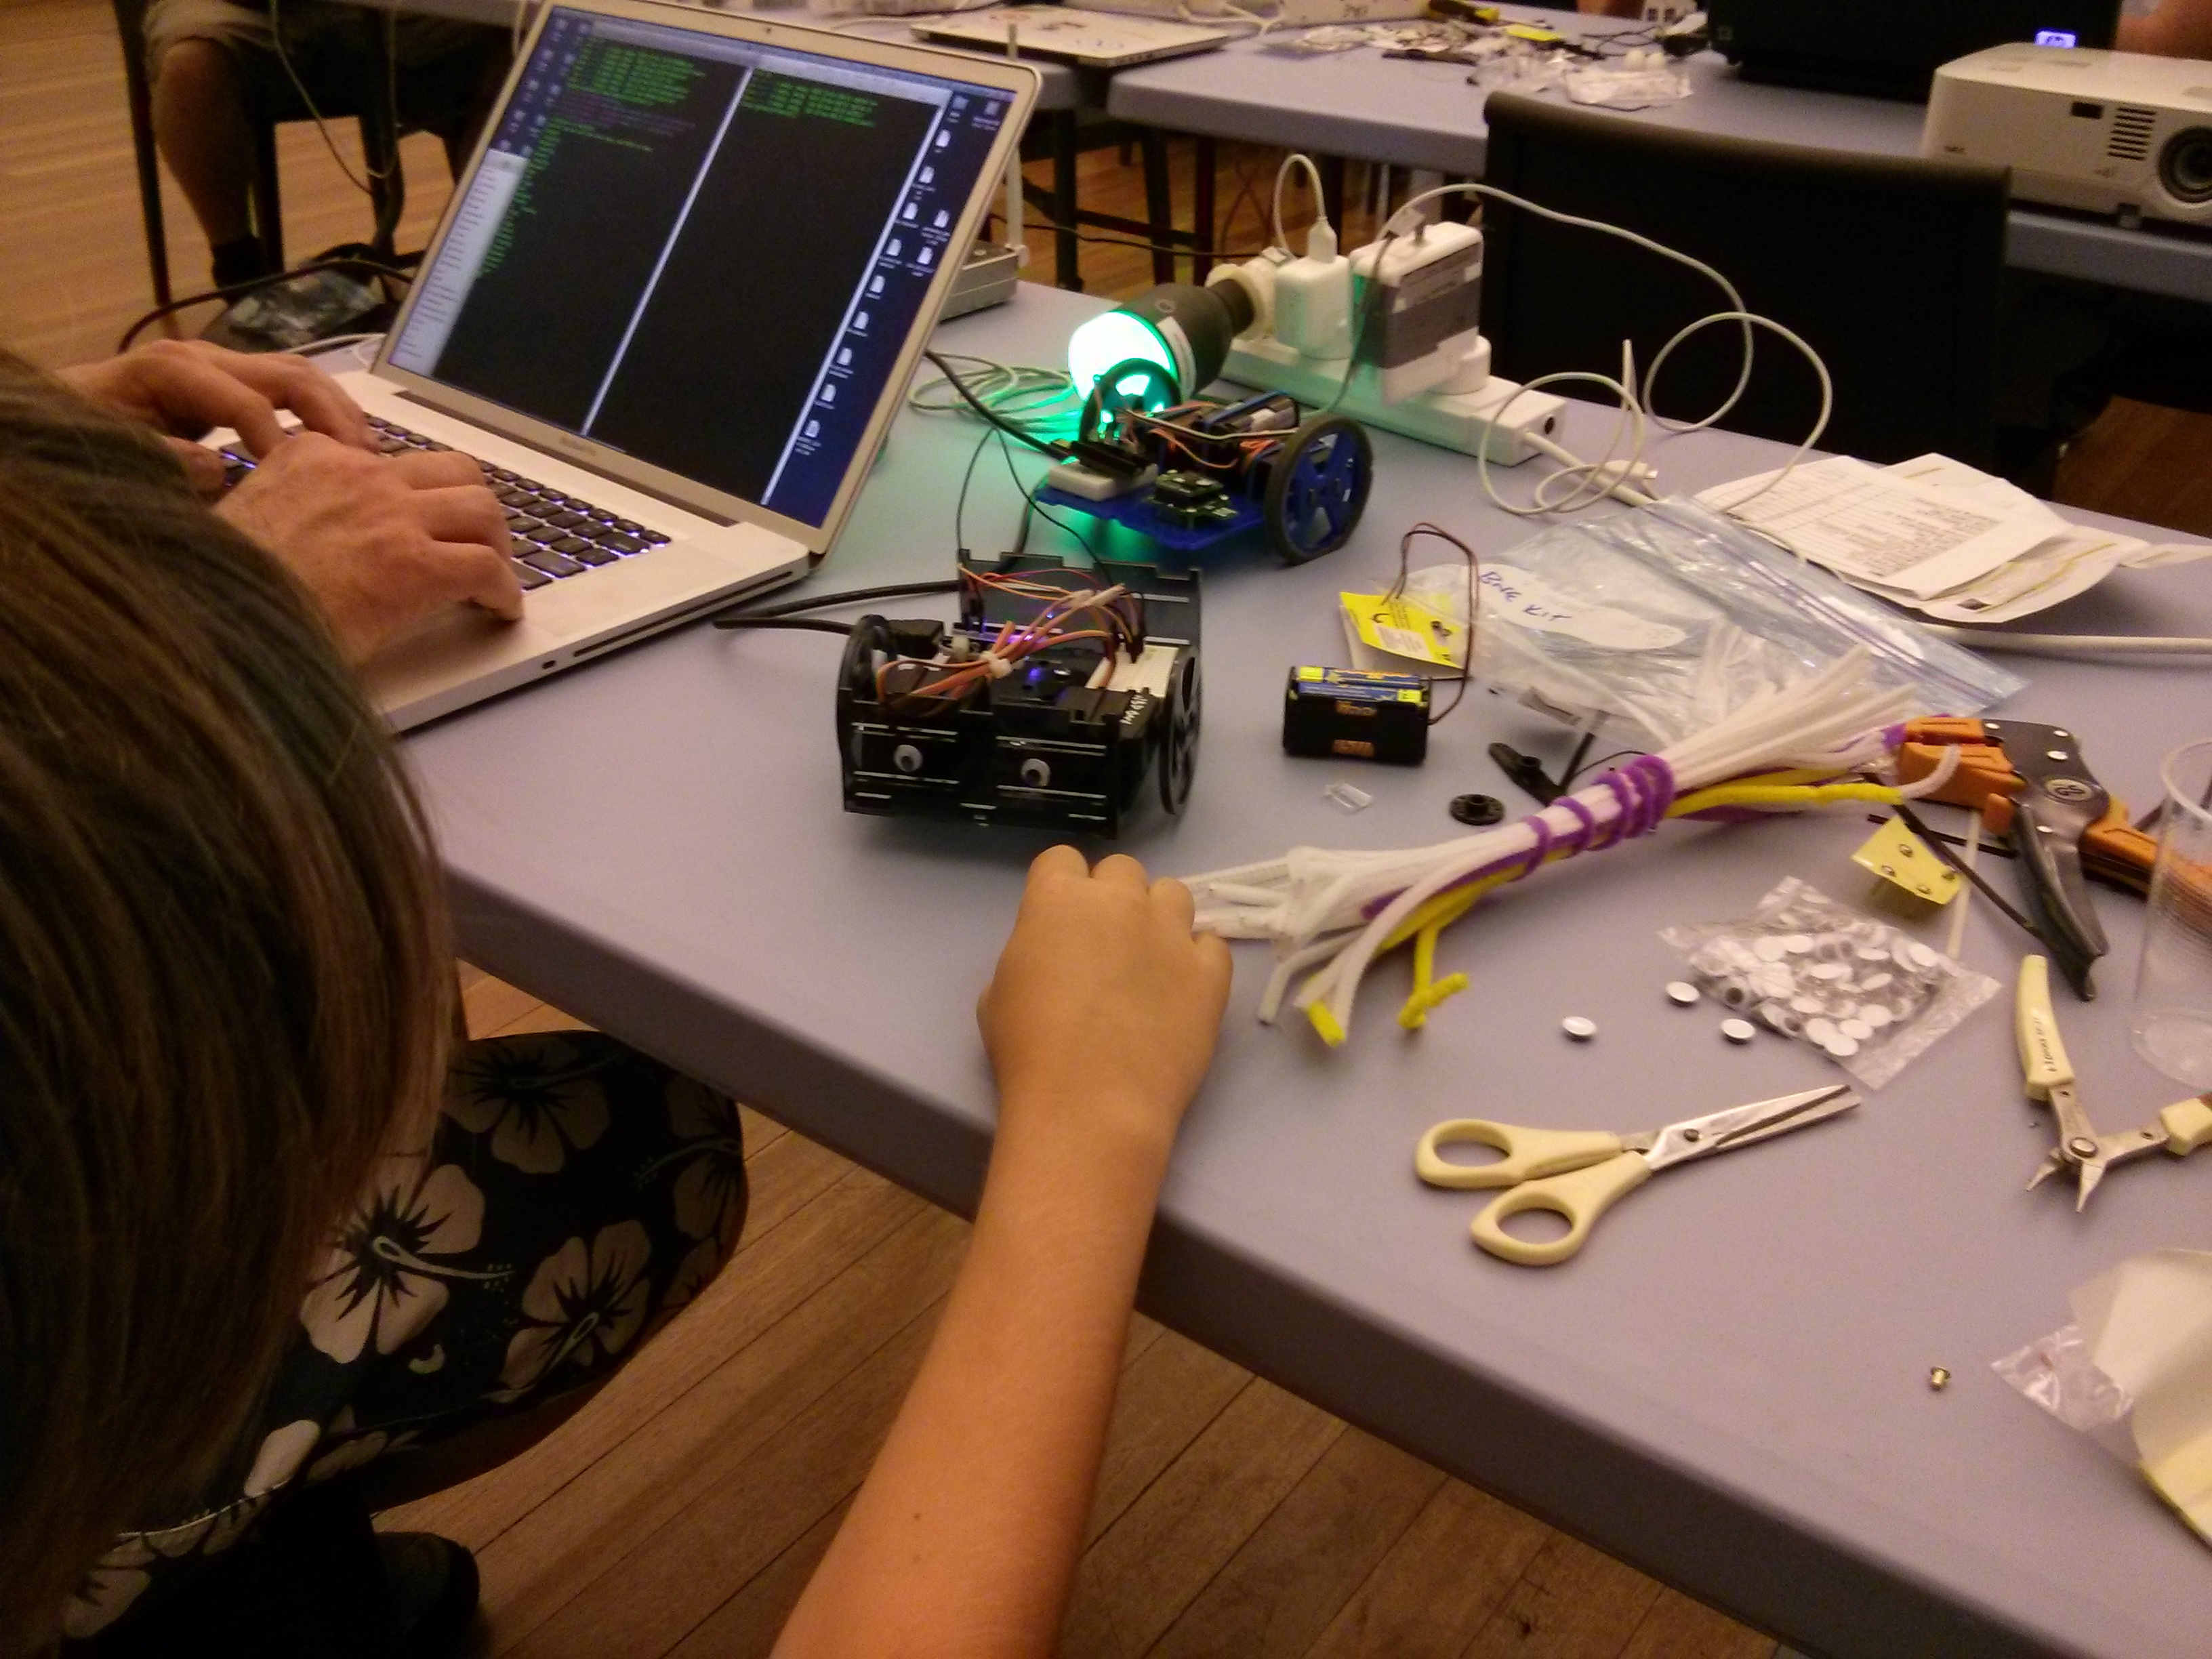 Playing with NodeBots